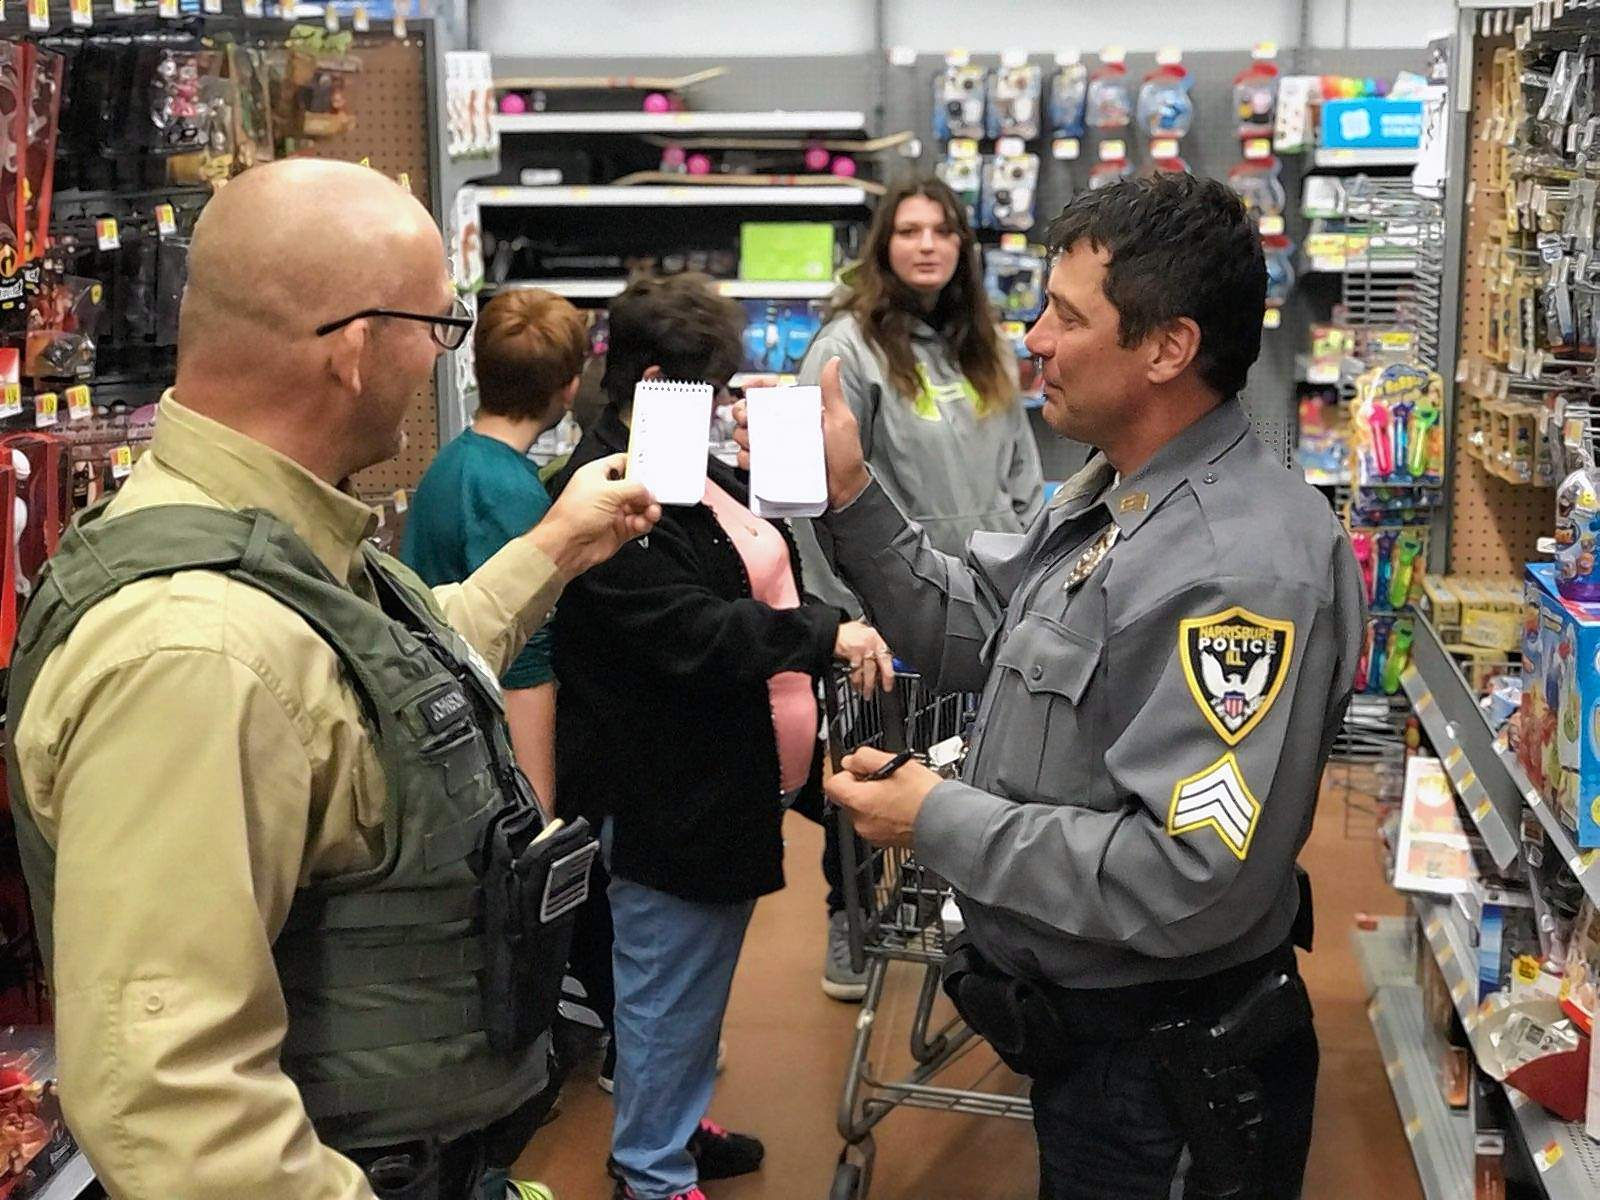 """Saline County Sheriff James """"Whipper"""" Johnson, left, and Harrisburg Police Department Sgt. Curt Hustedde compare shopping lists as they assist with Saline County's Shop with a Cop program Saturday at the Harrisburg Walmart."""